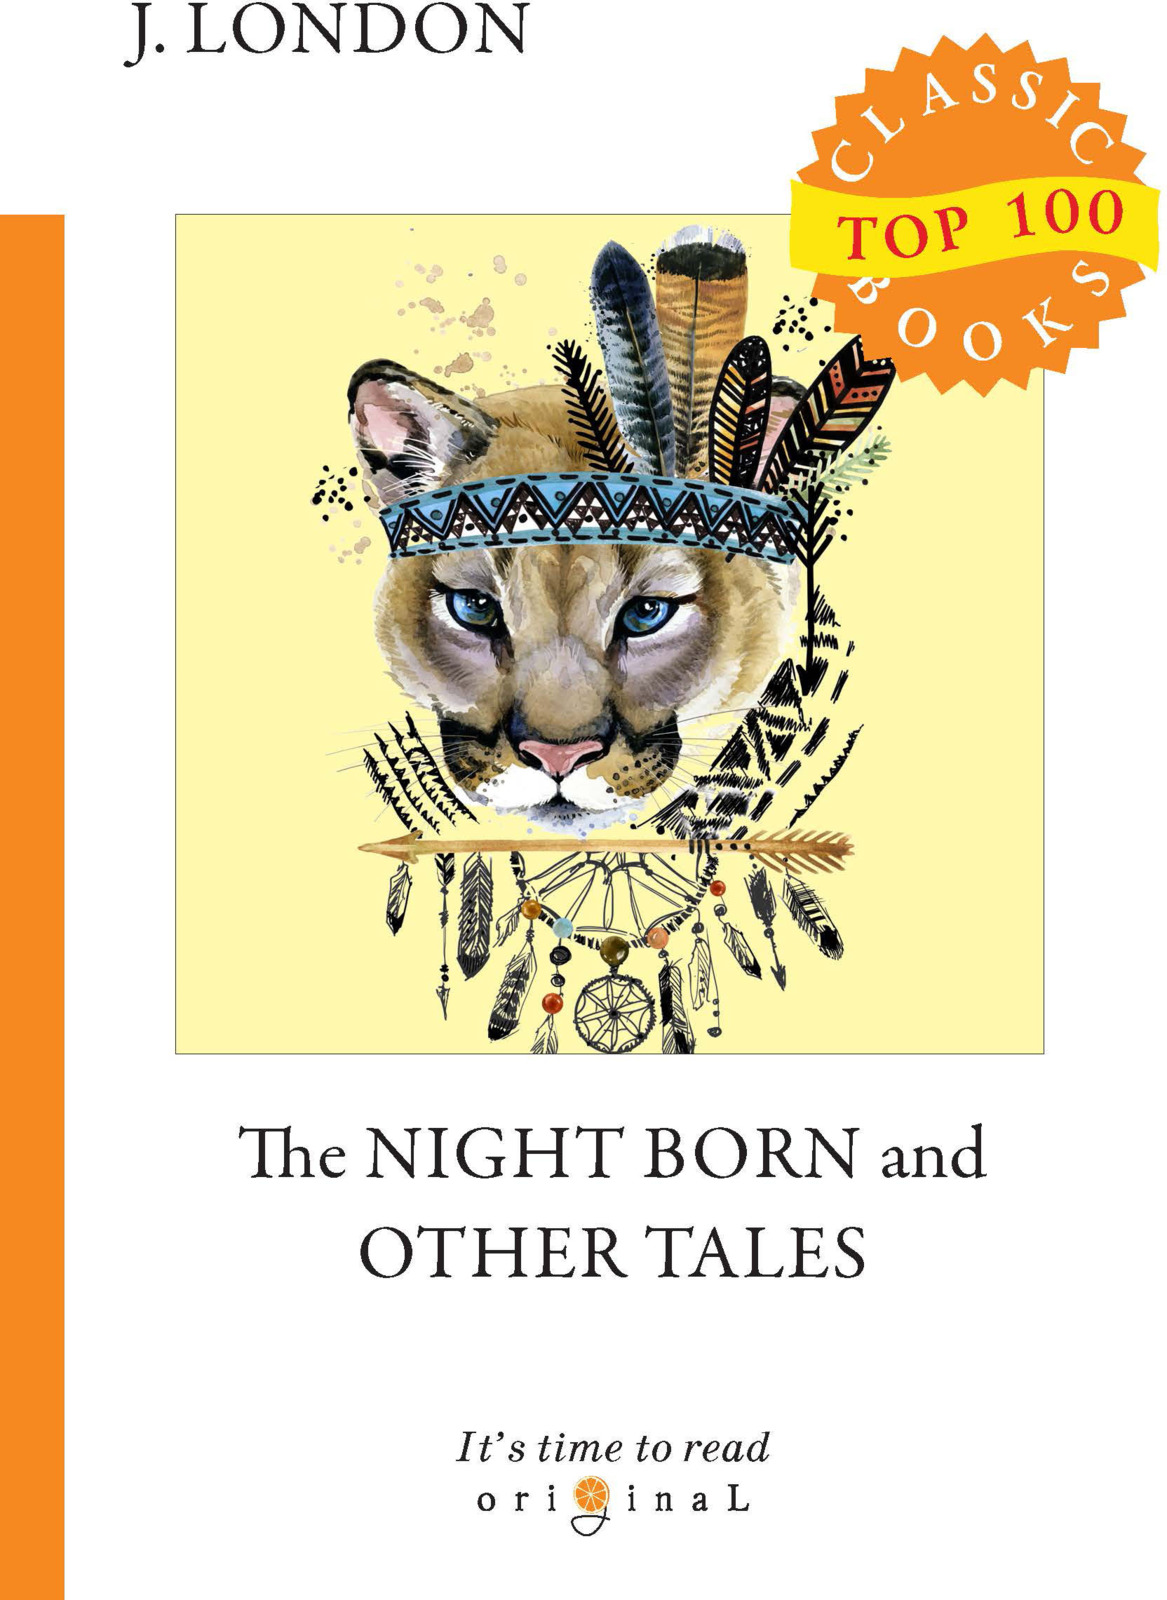 J. London The Night Born and Other Tales london j short stories iv the house of pride the night born dutch courage and other stories